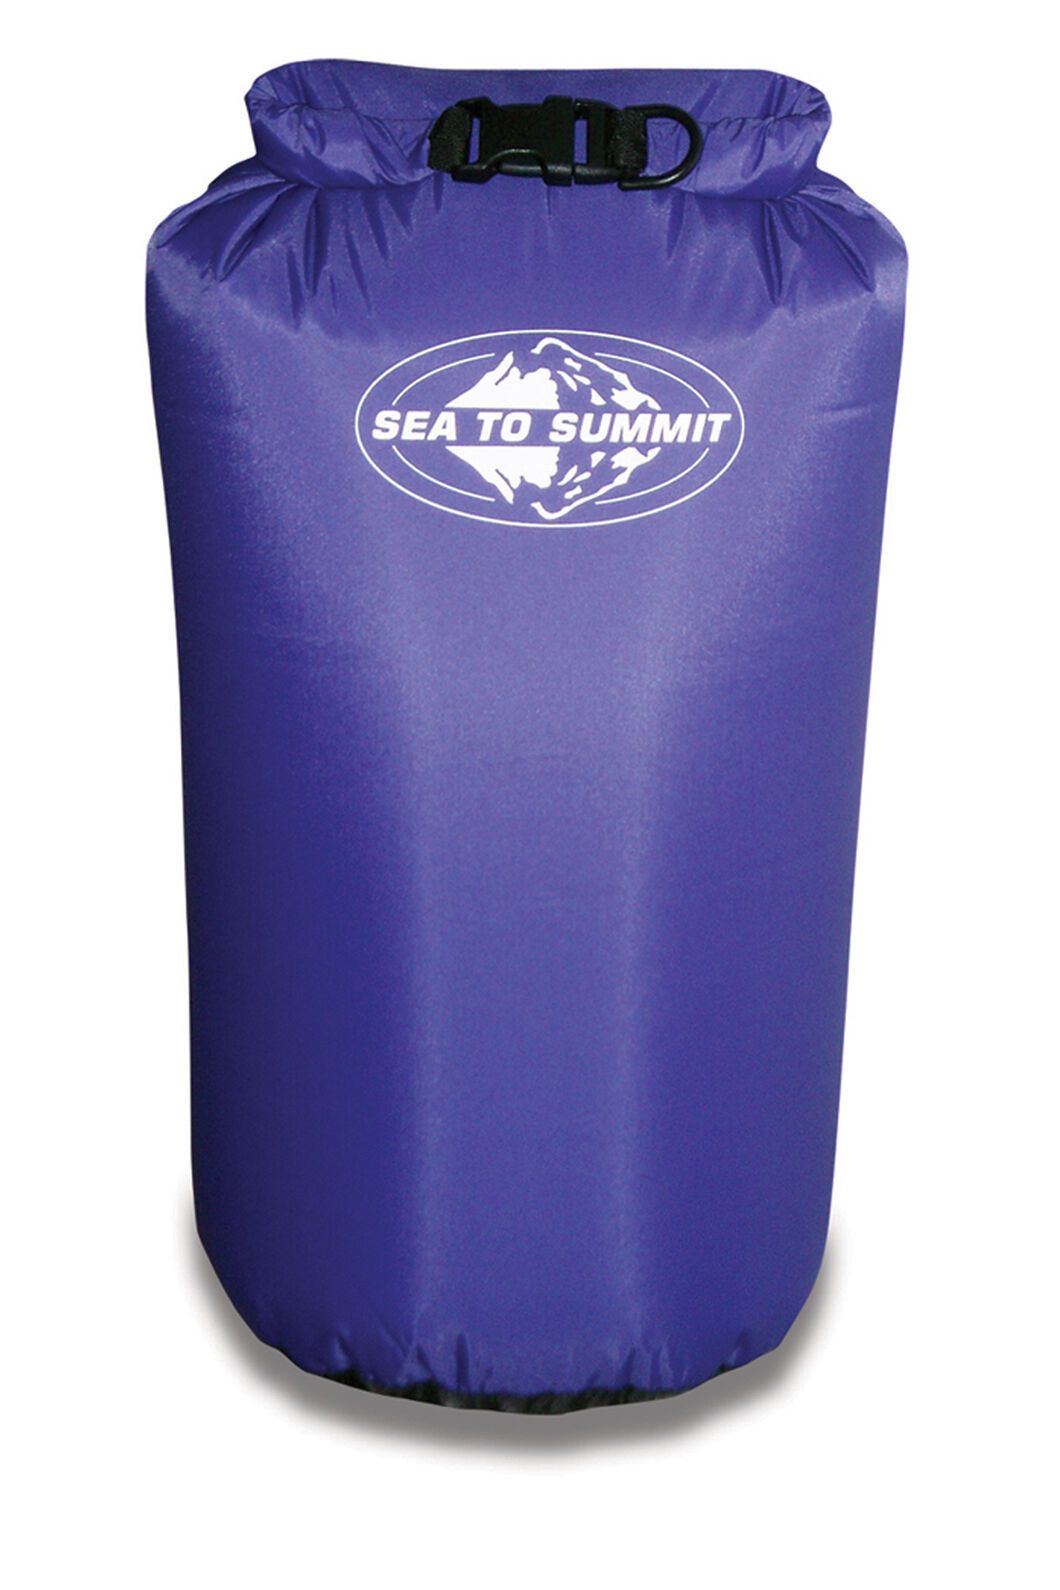 Sea to Summit 4L Light Dry Sack, None, hi-res